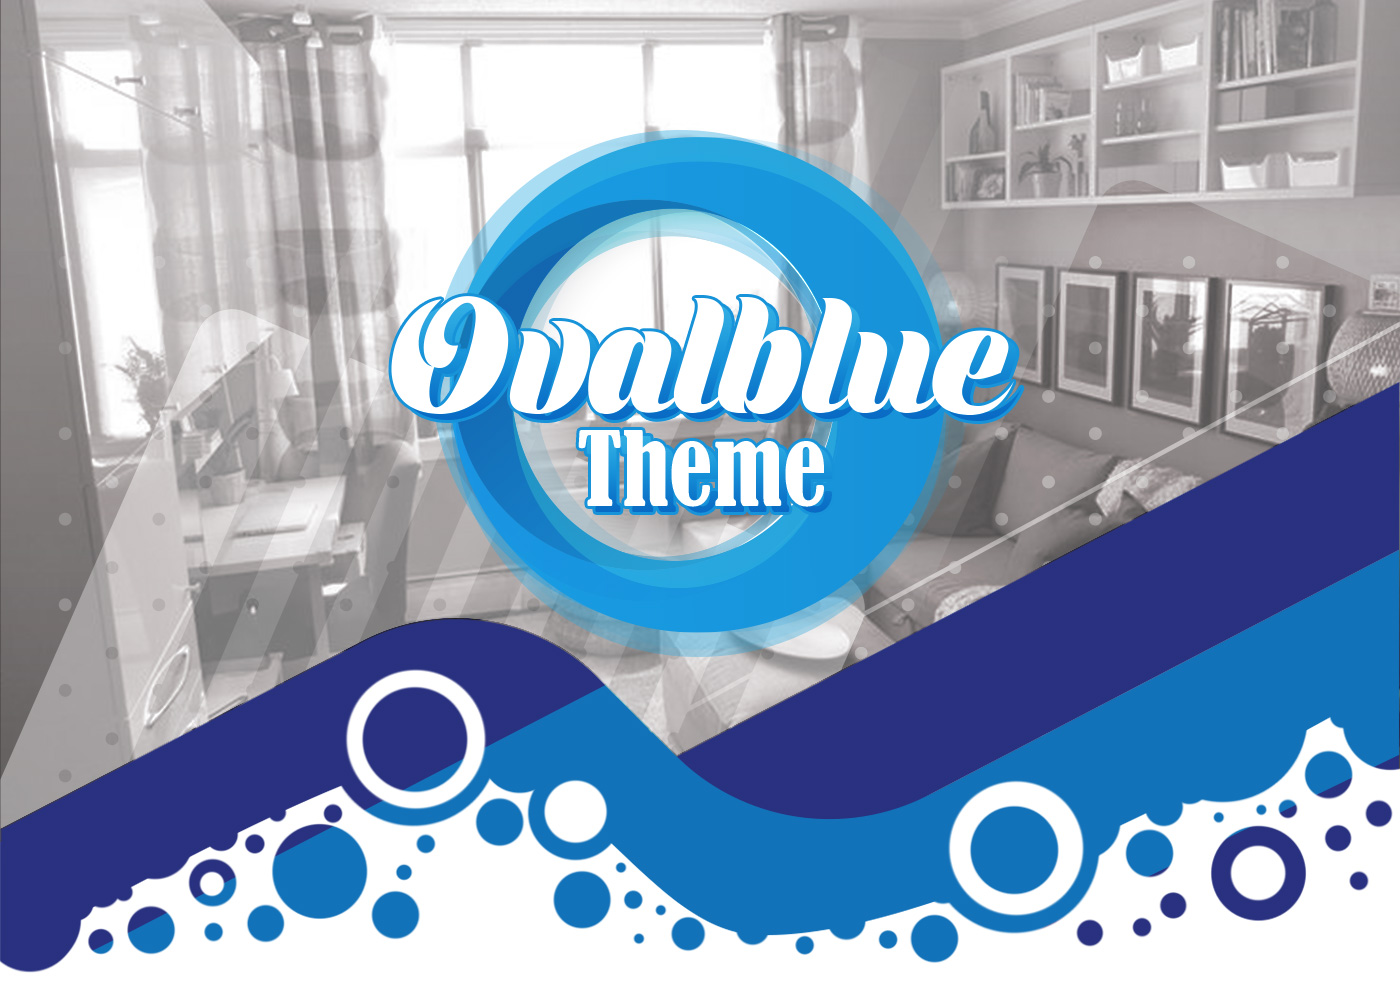 Ovalblue - Cover